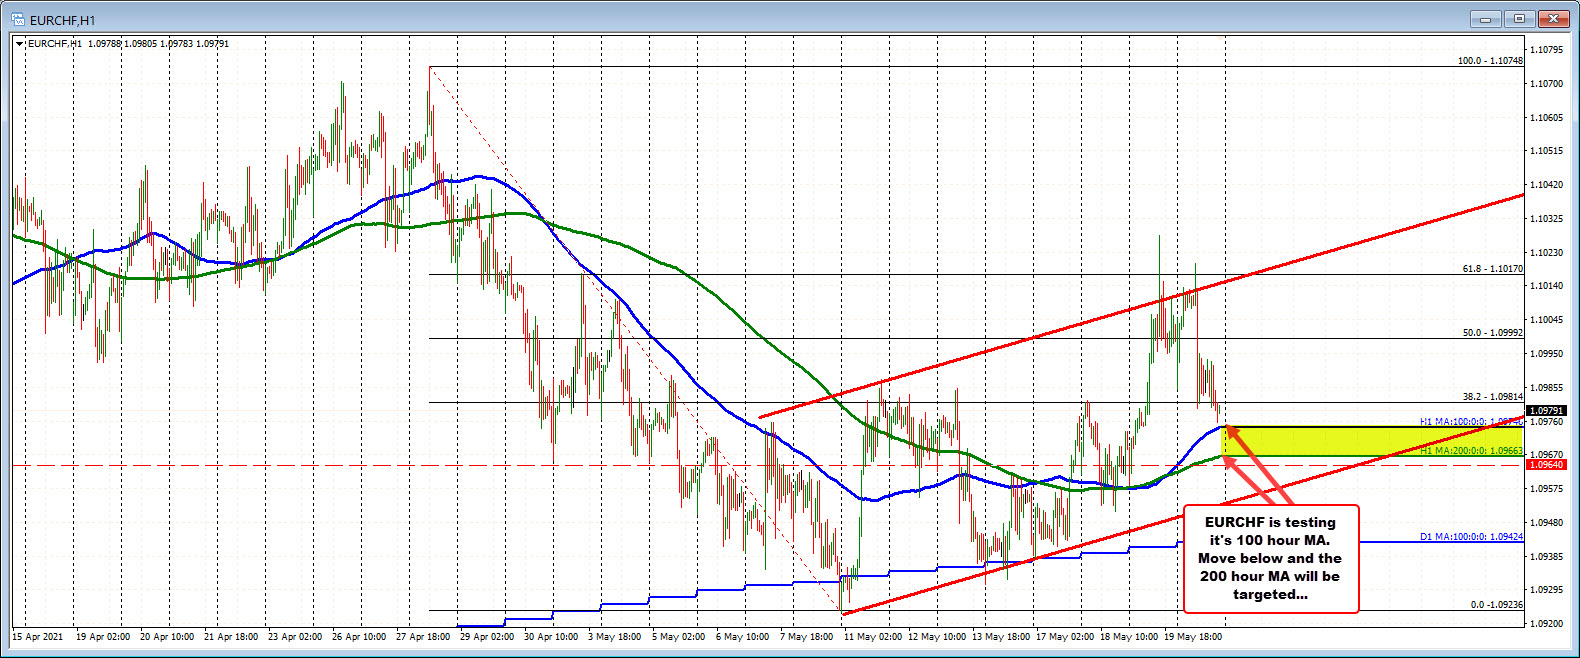 EURCHF on the hourly chart